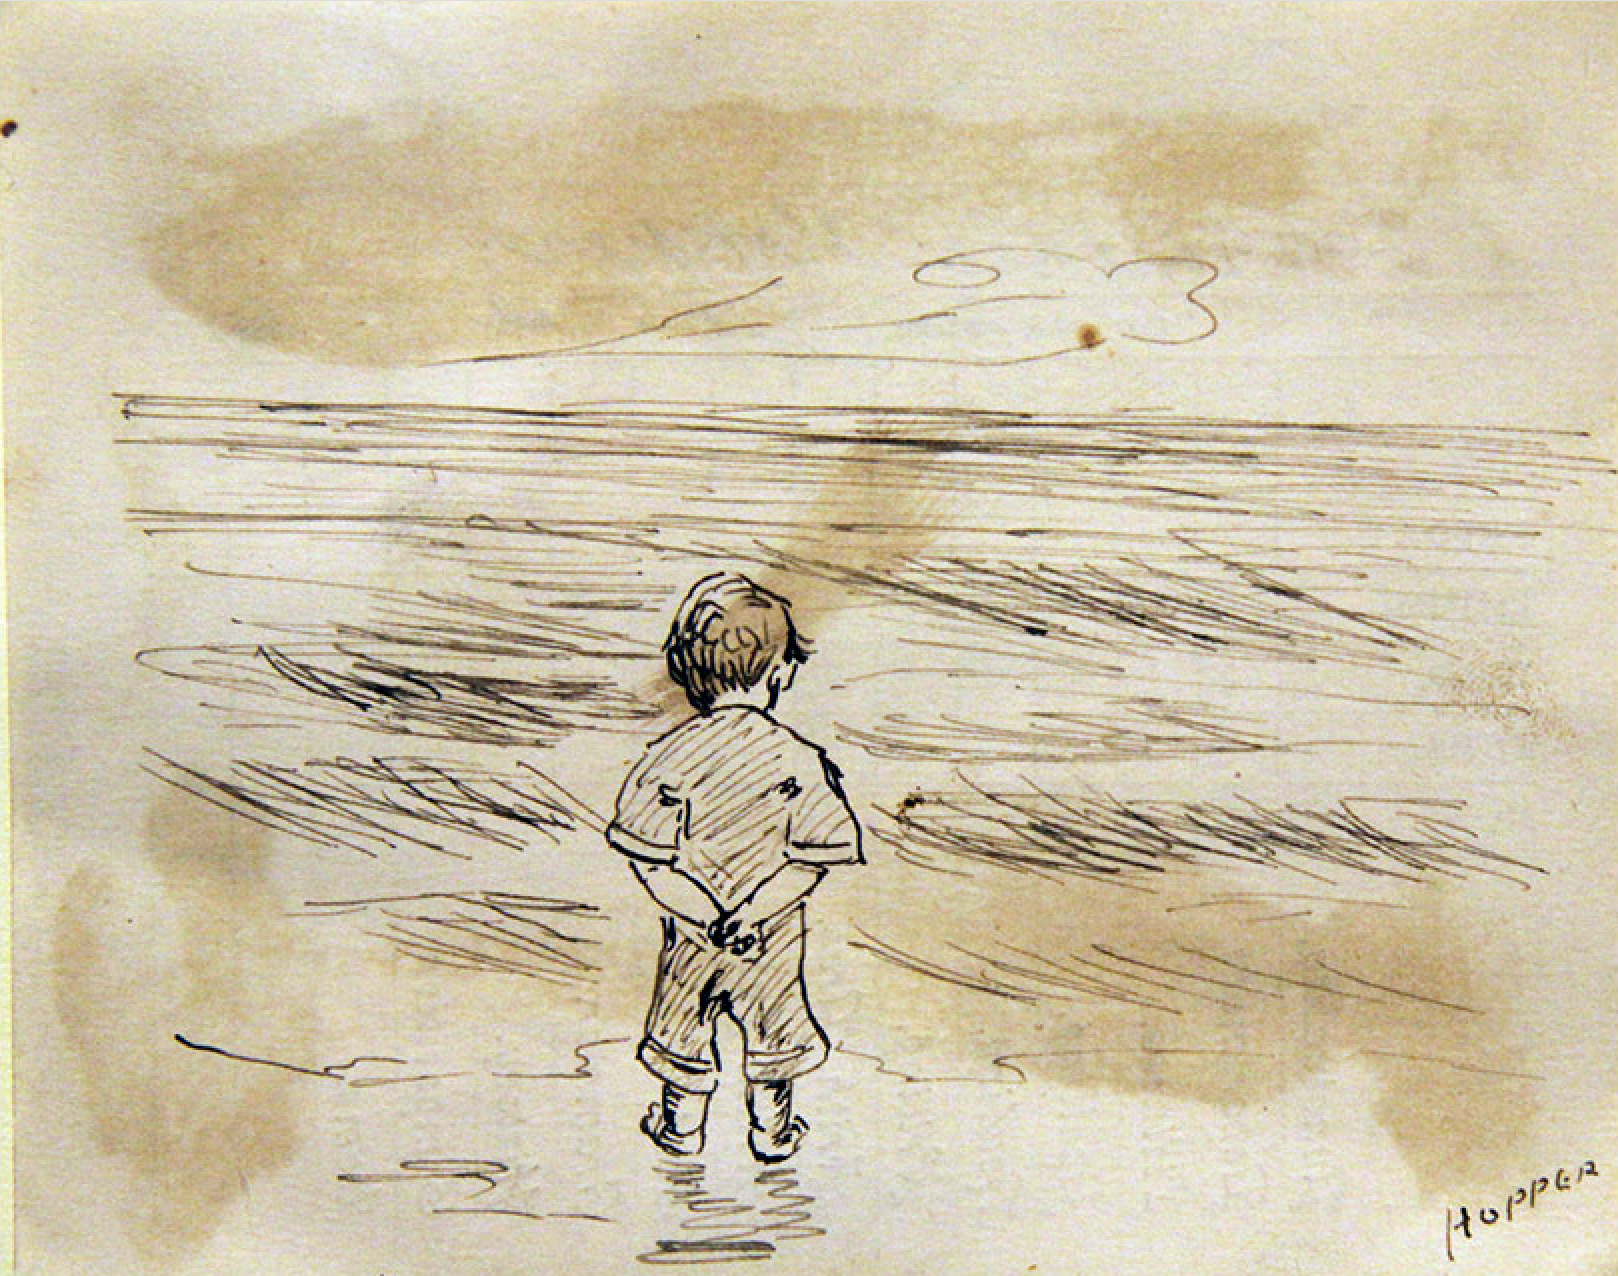 Black ink drawing of little boy from behind, walking on the seashore.